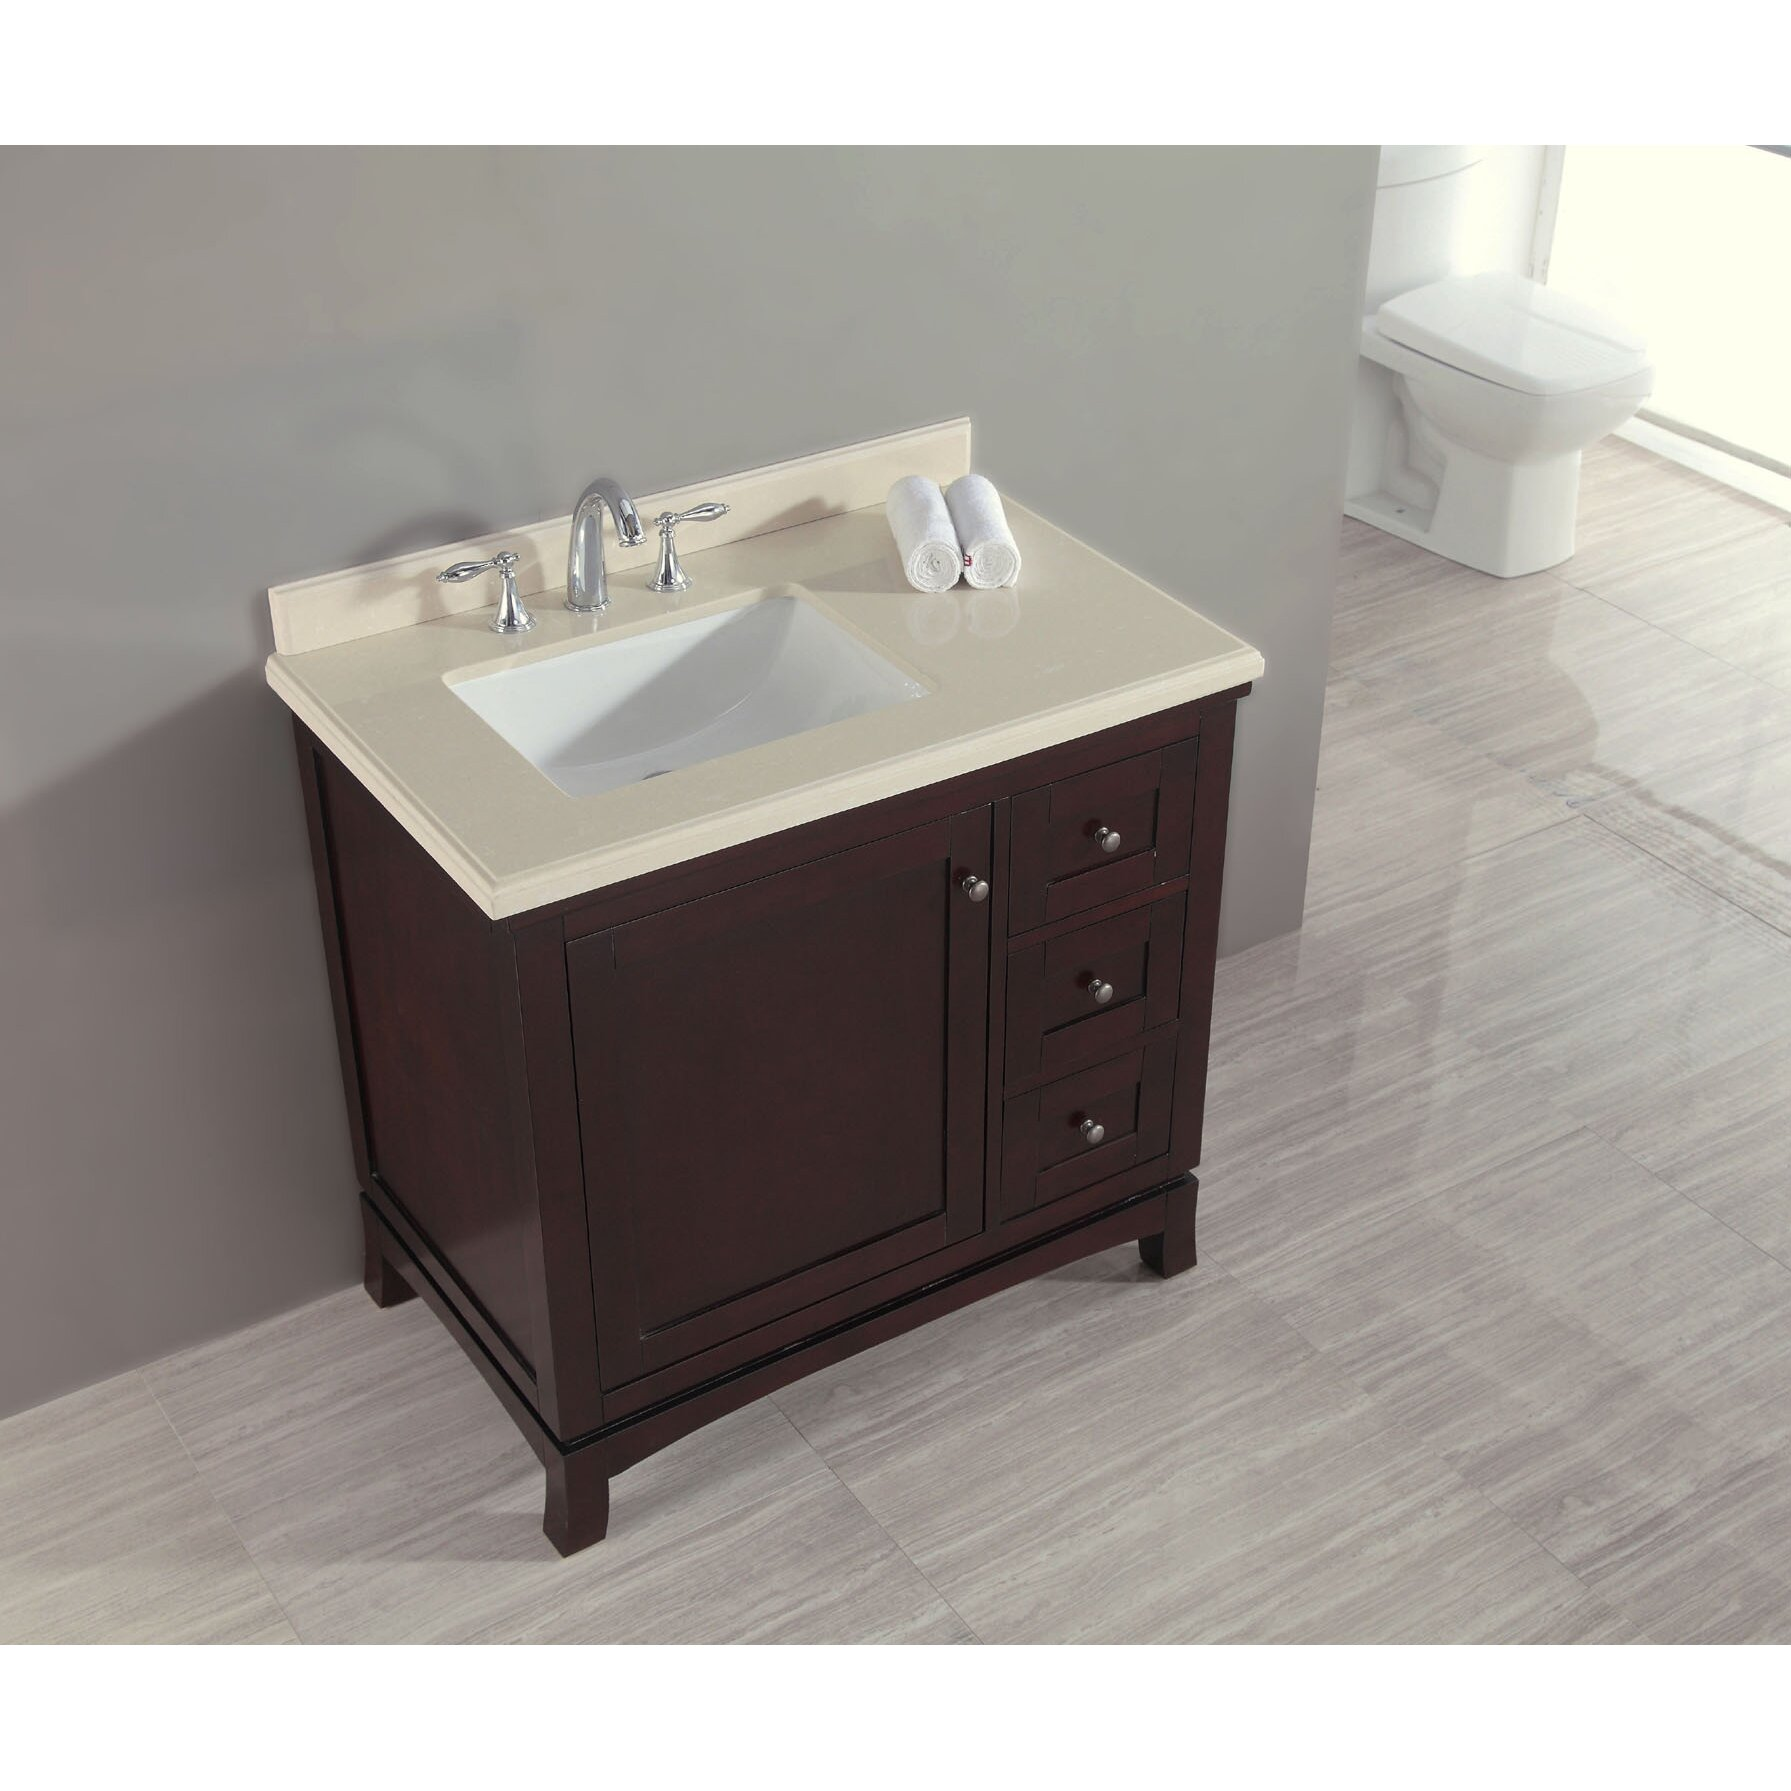 ove decors valega 36 single bathroom vanity set reviews - Wayfair Bathroom Vanity